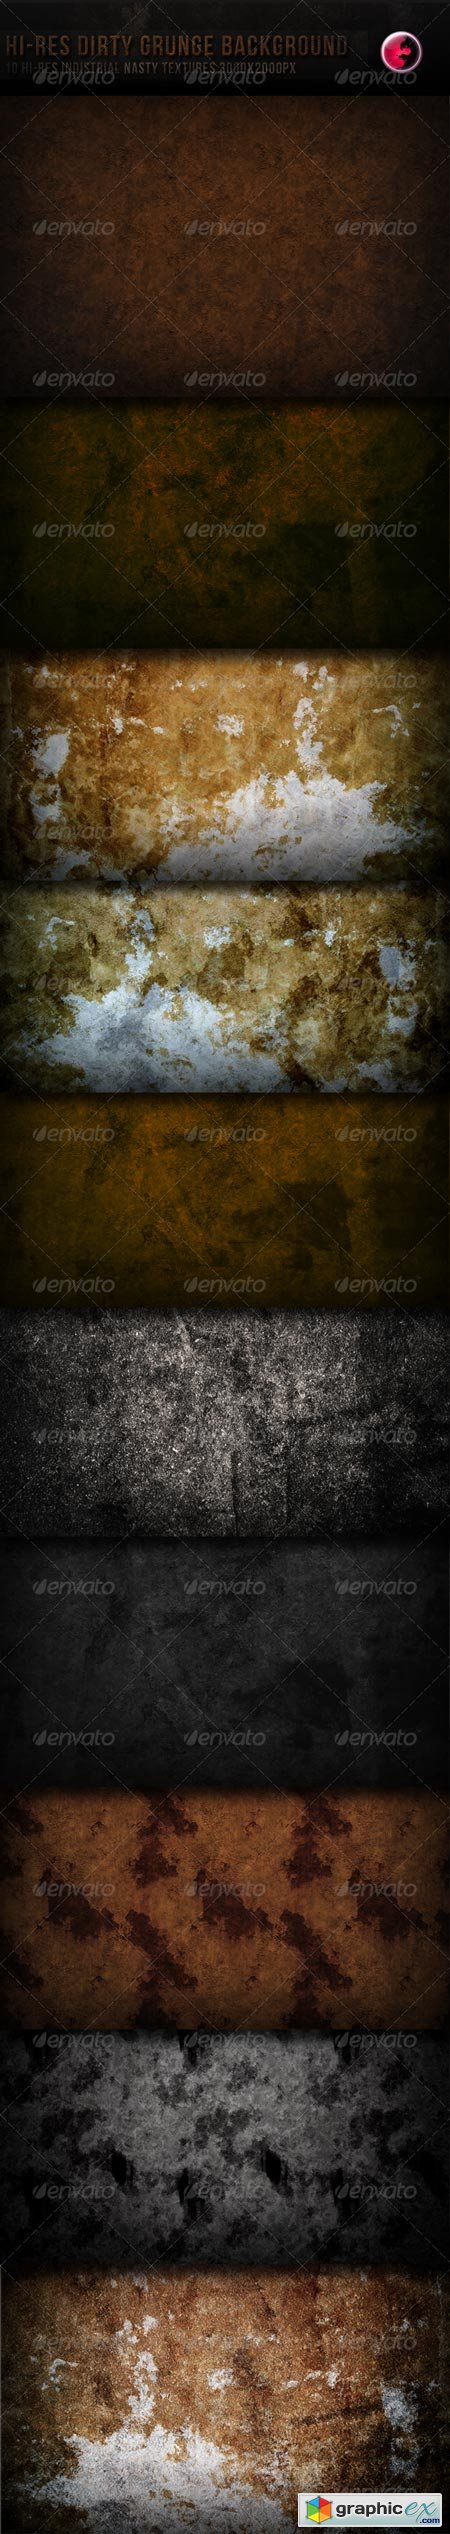 10 Hi-res Dirty Grunge TeXture Background 163827